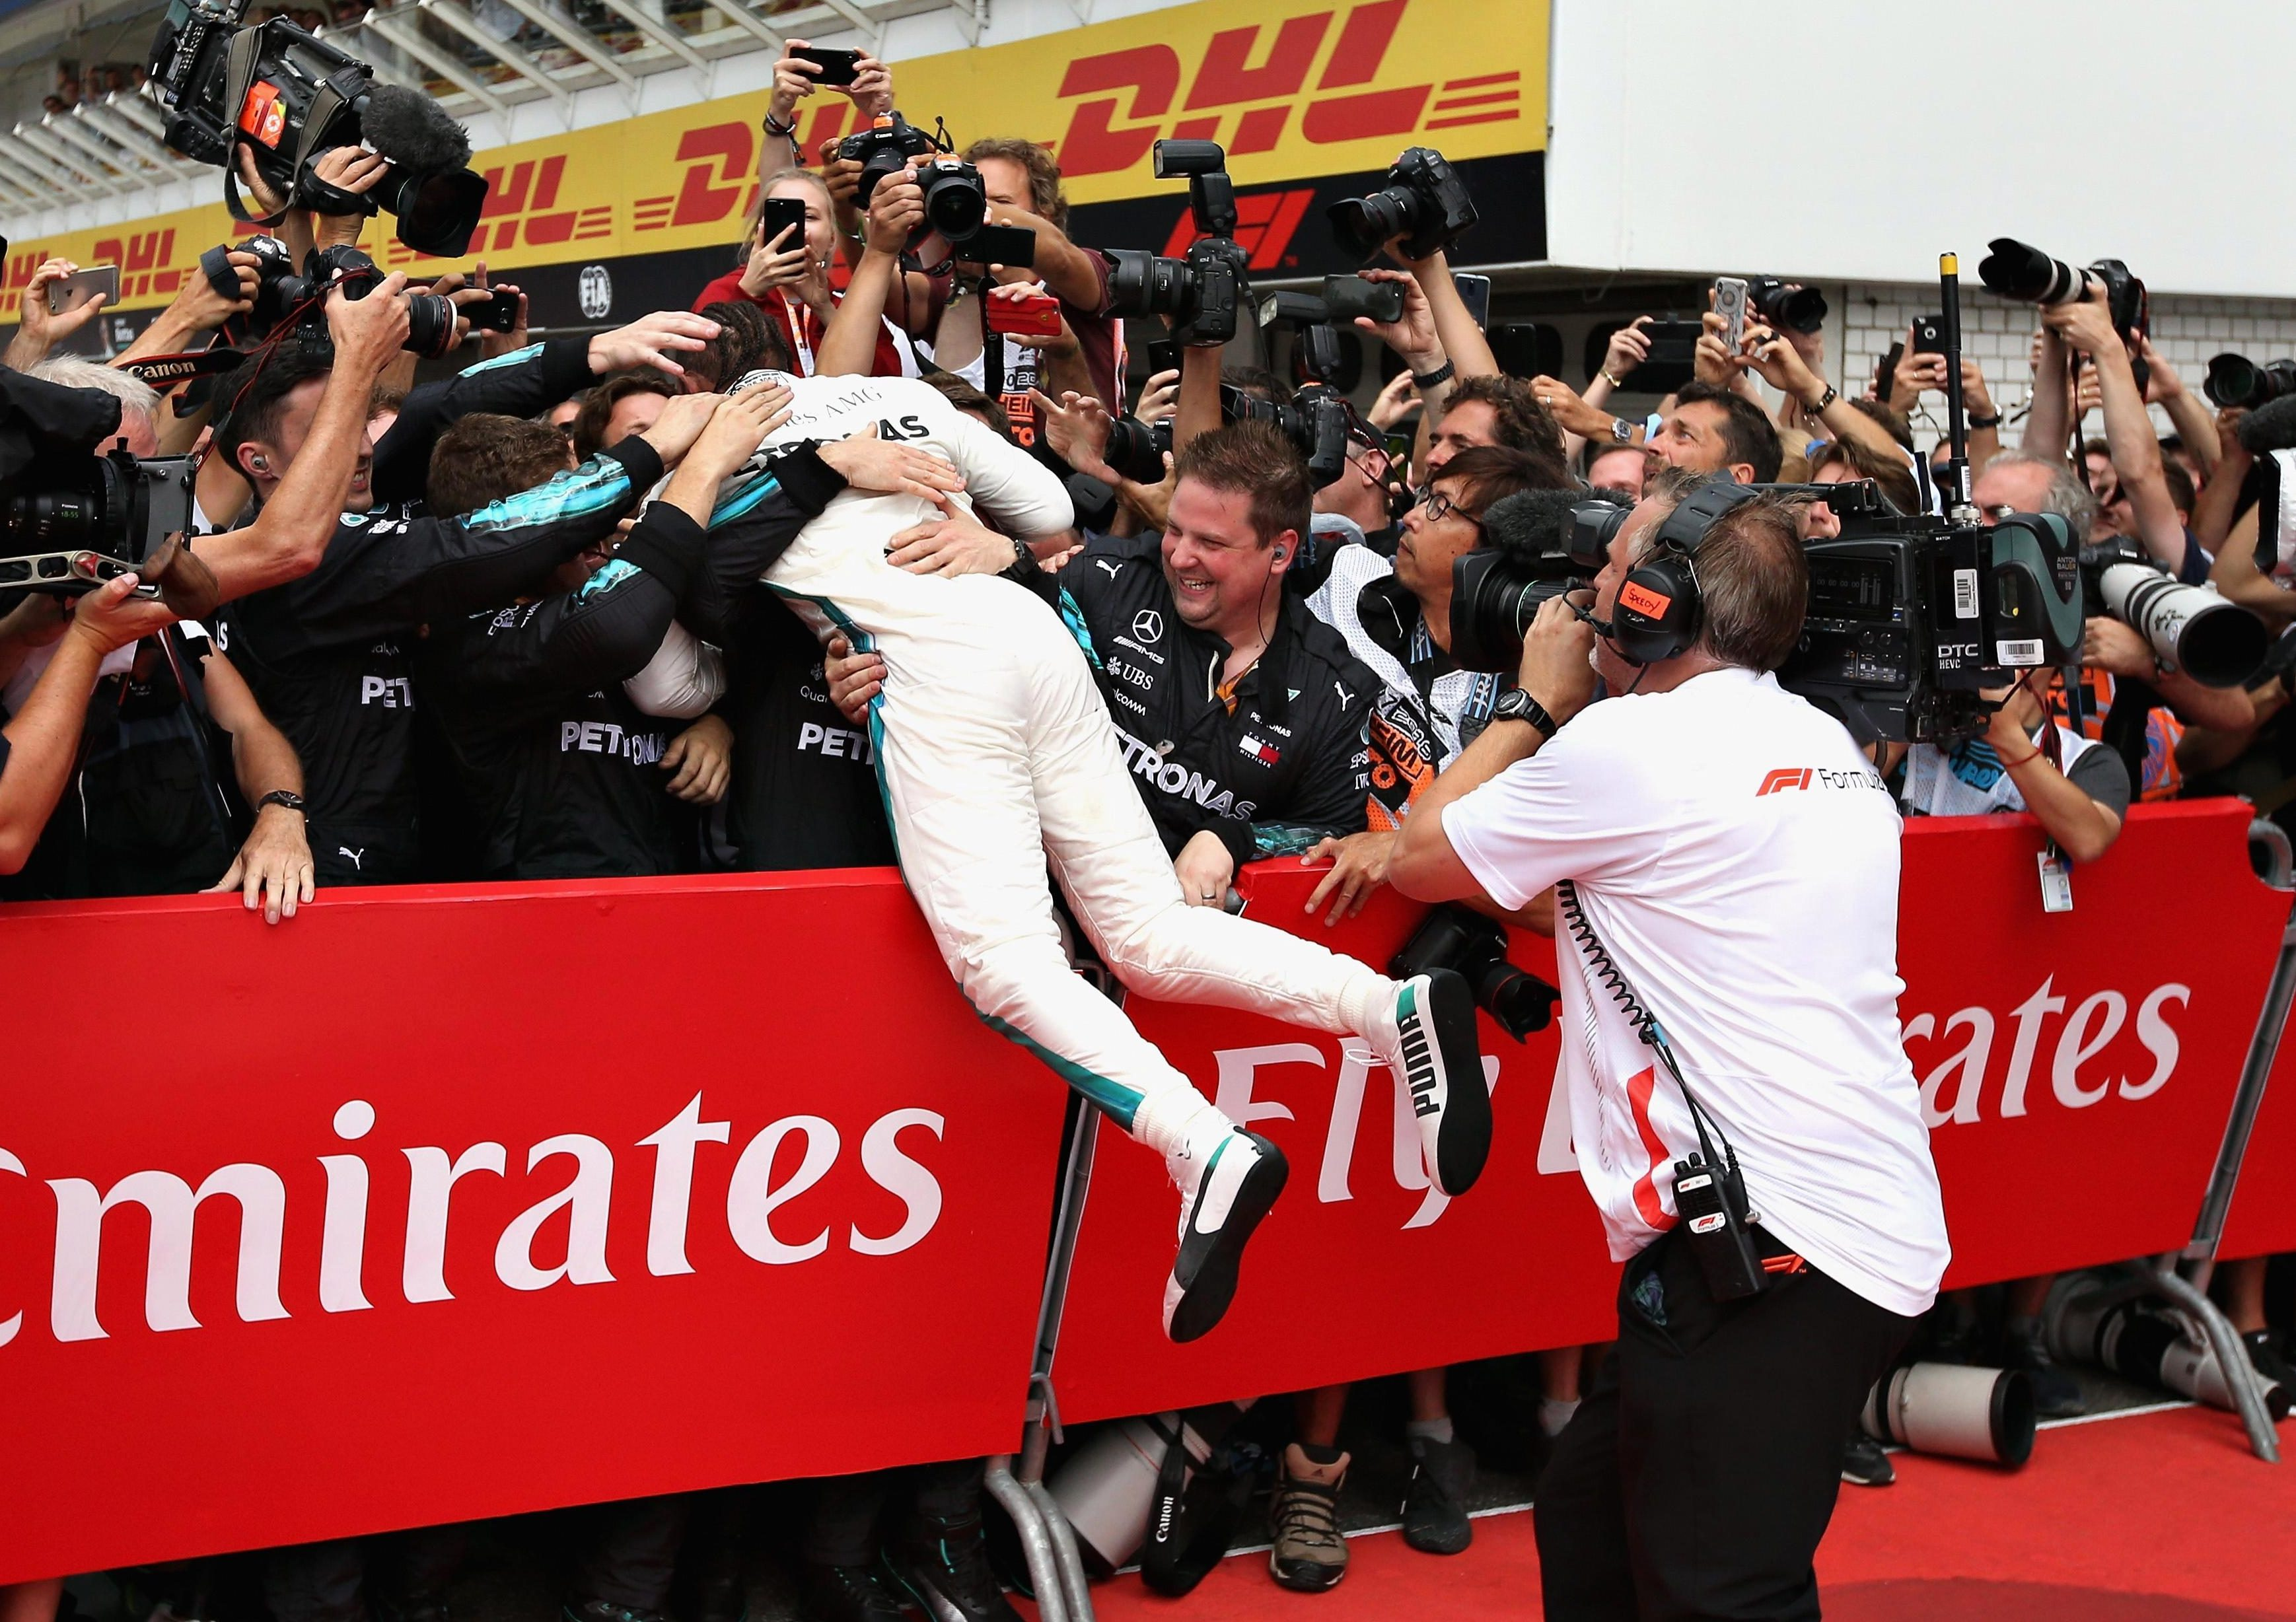 Hamilton leads the drivers' standings by 17 points from Vettel, with ten races still to go